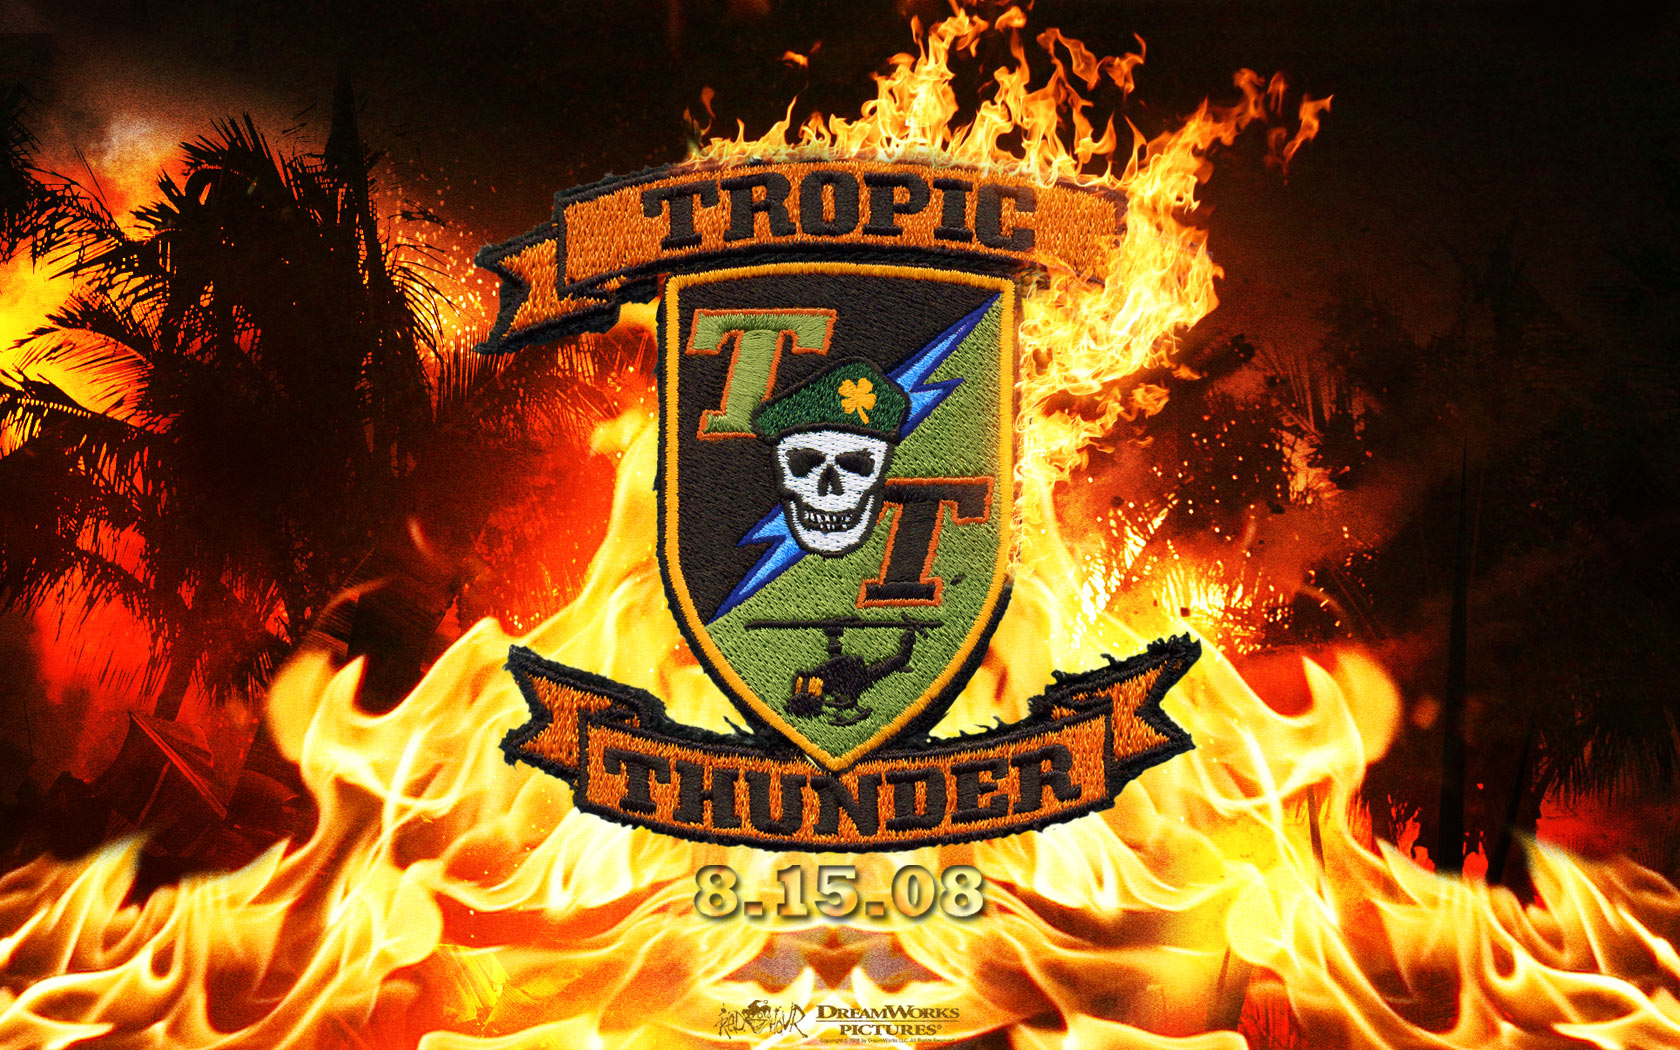 Tropic_Thunder_logo_wall_1680.jpg